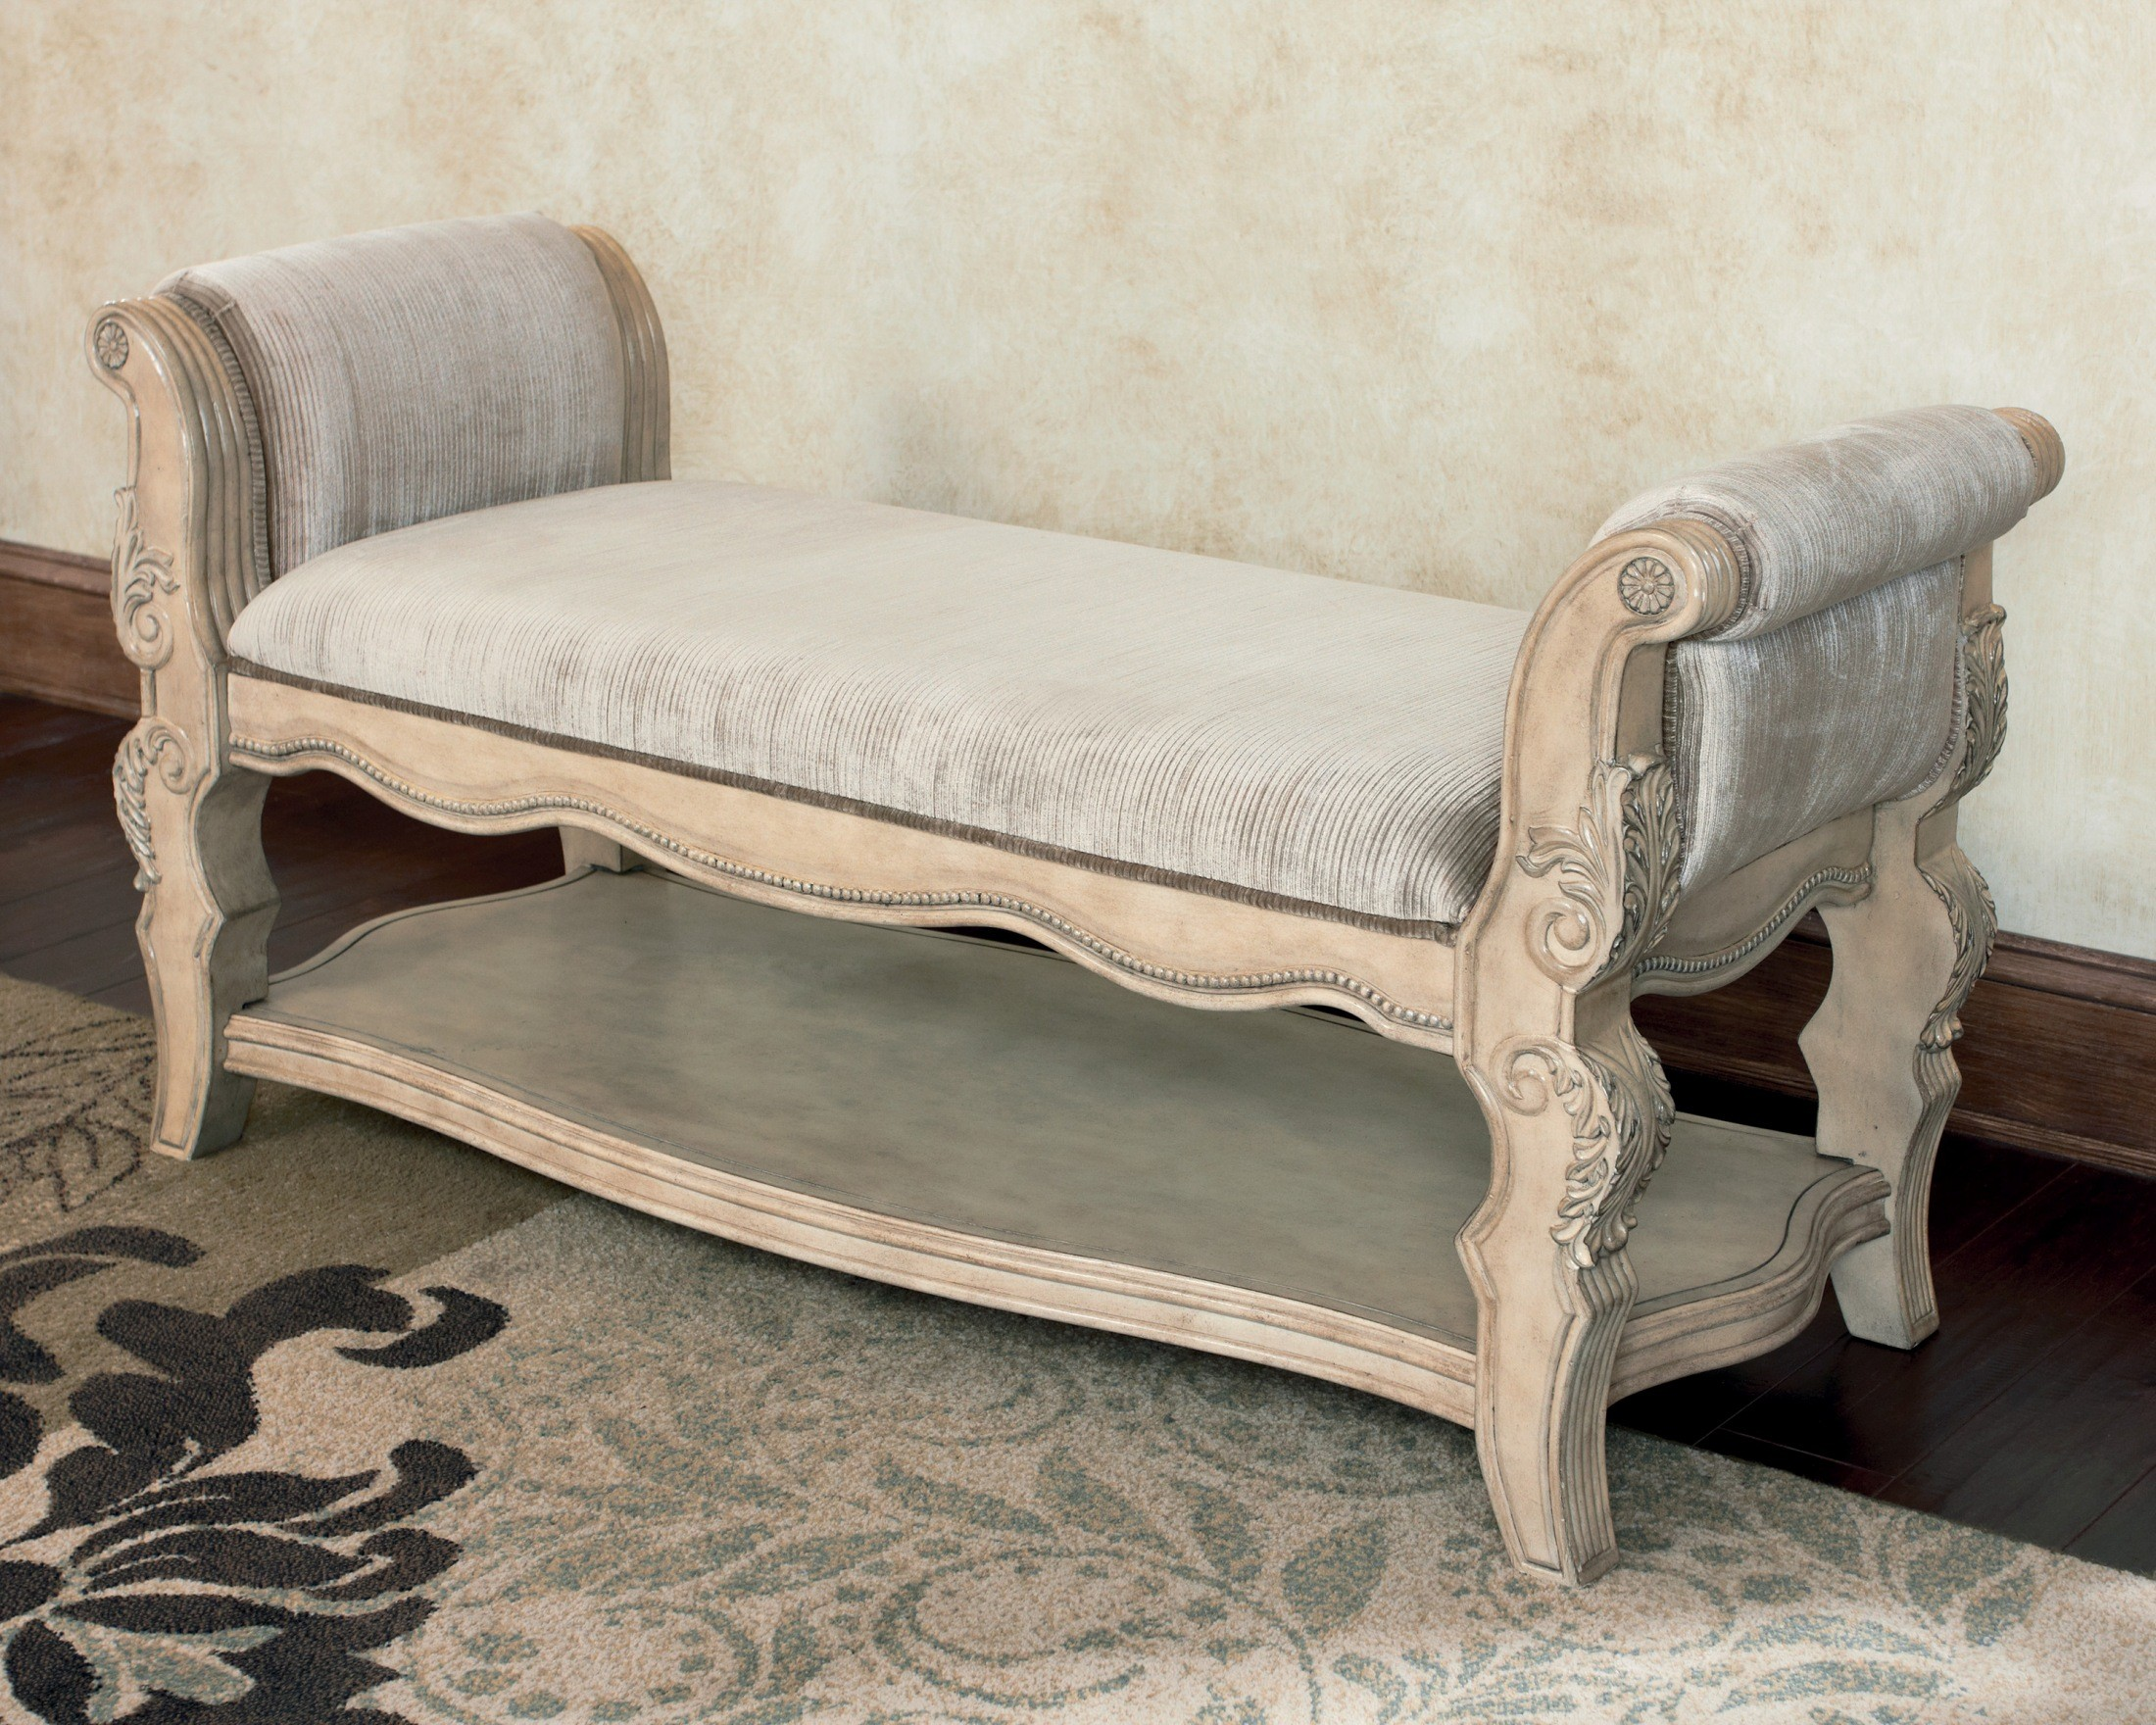 ortanique upholstered bench b707 09 millennium design by